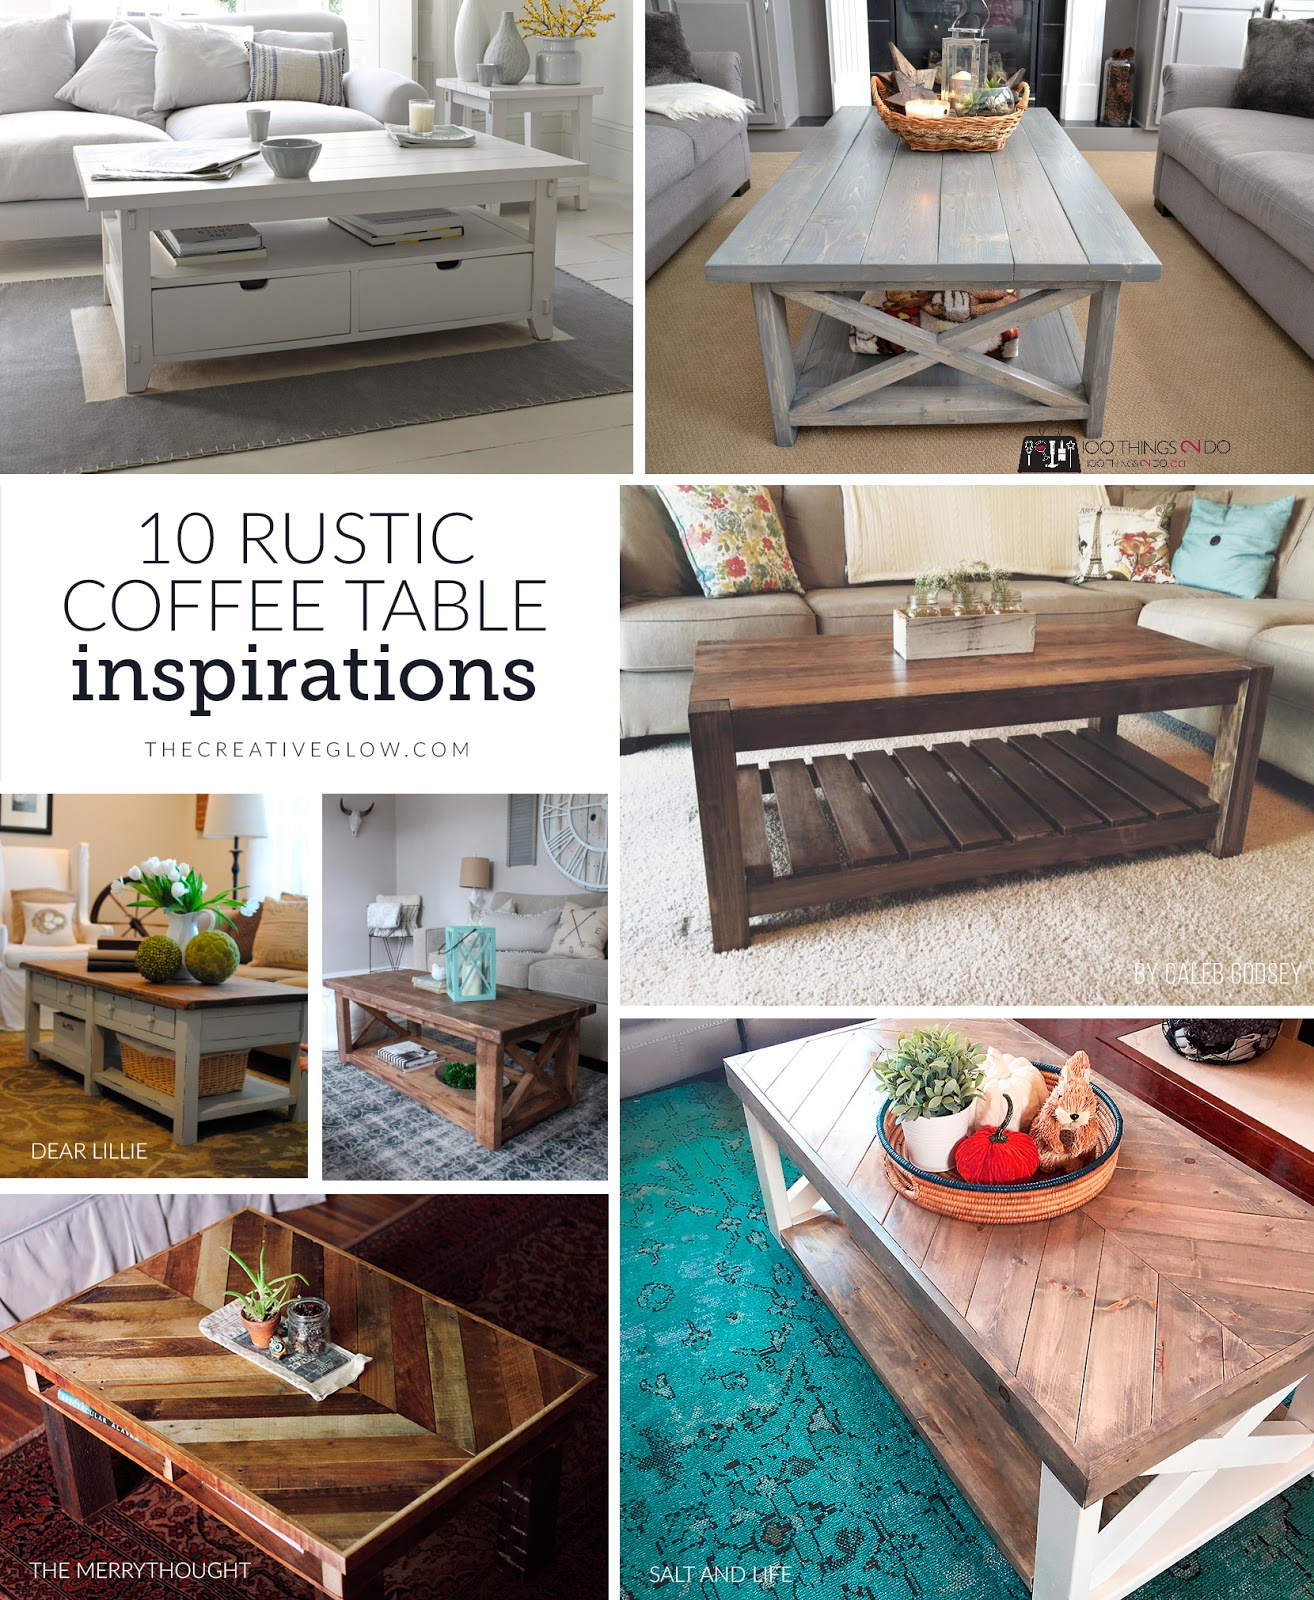 10 Rustic Coffee Table Inspirations | The Creative Glow ... on Coffee Table Inspiration  id=85476